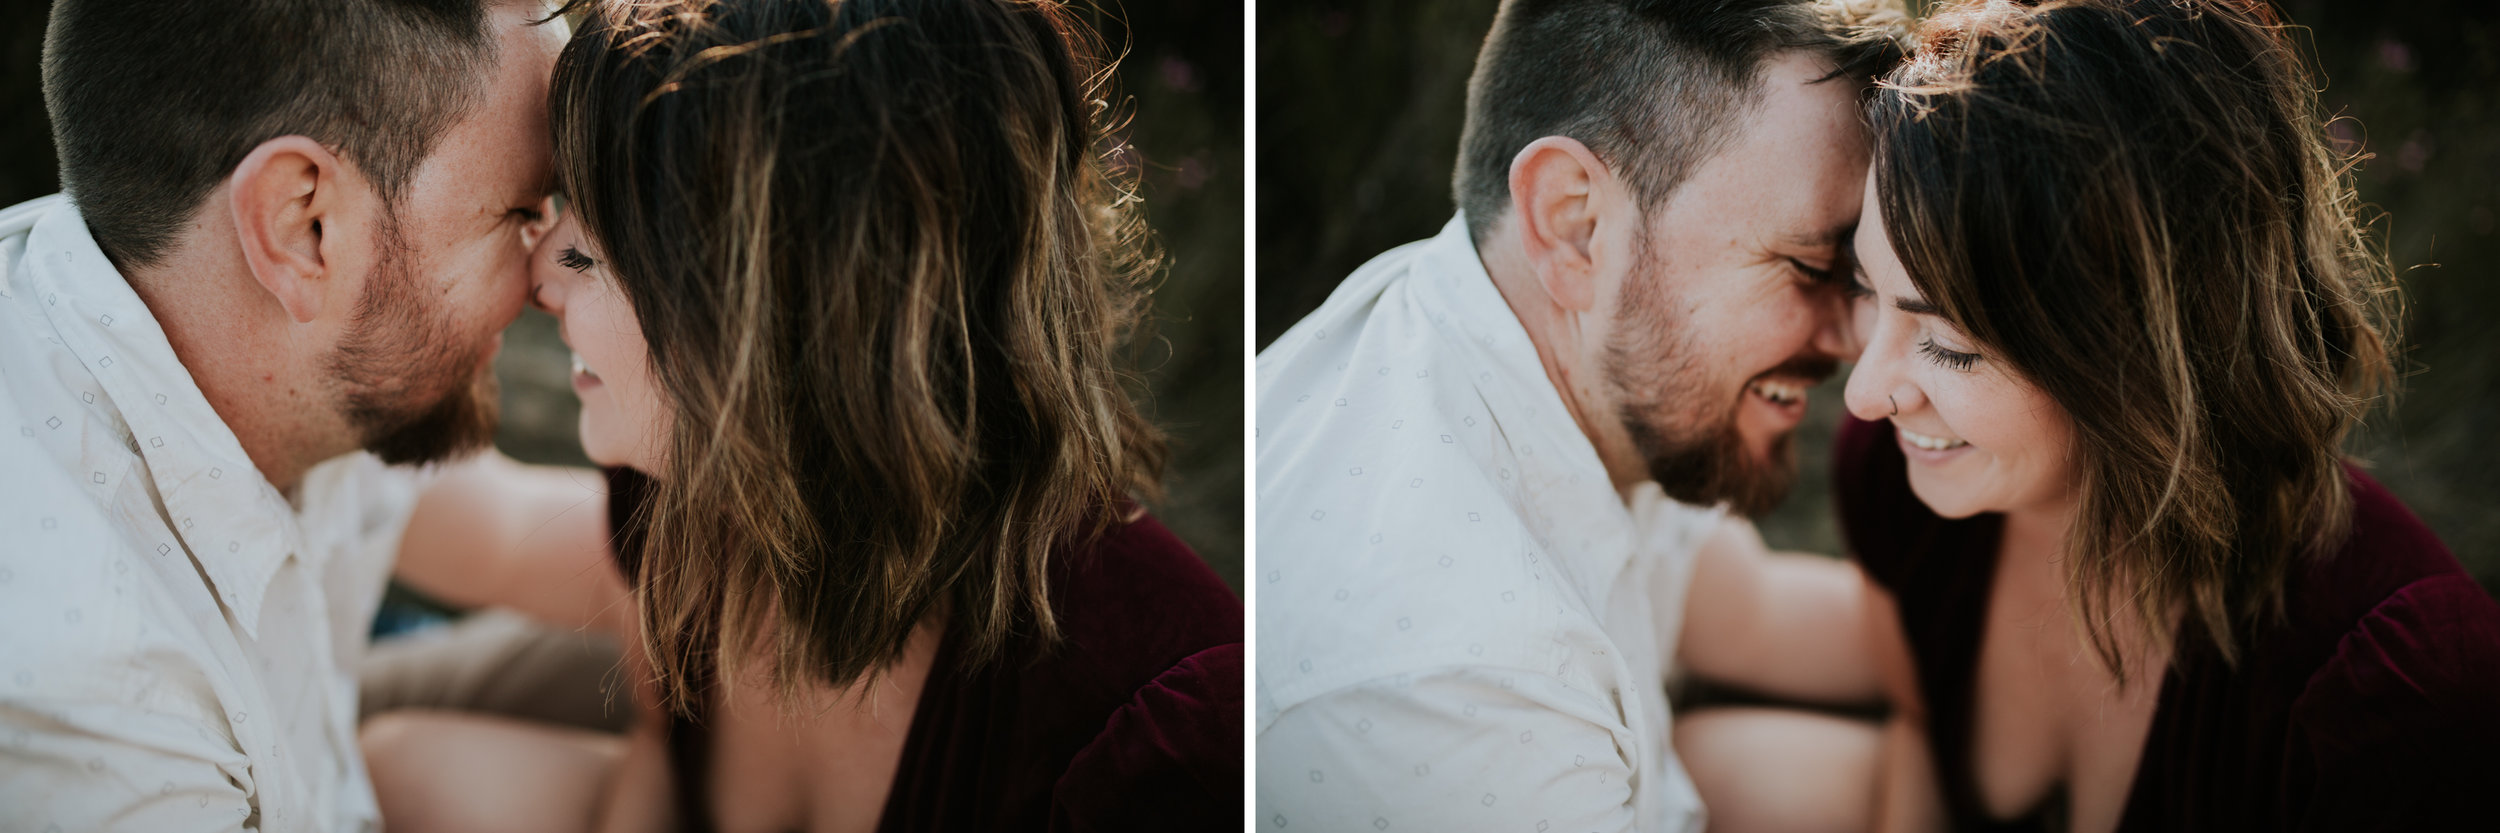 Sarah+Grant+Anniversary+Couple+session+Southern+highlands-8.jpg